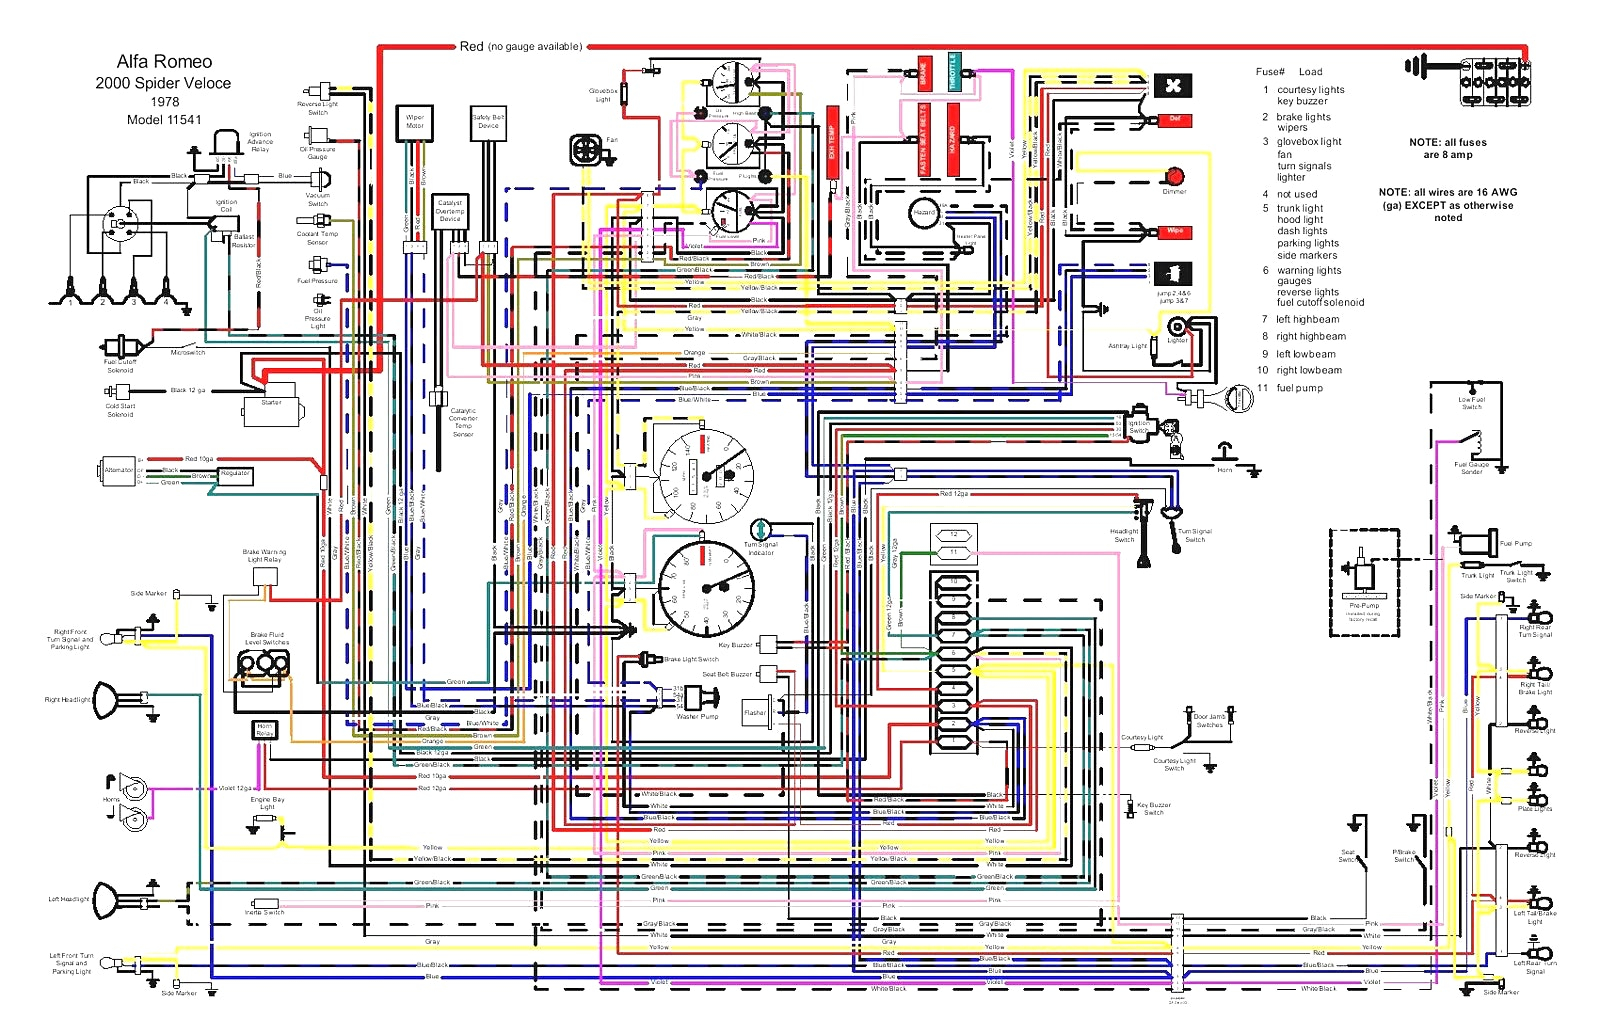 auto electrical wiring diagram software Collection-Automotive Wiring Diagram software Beautiful Diagrams Electrical and Tele Plan software Free Wiring Diagram 6-a